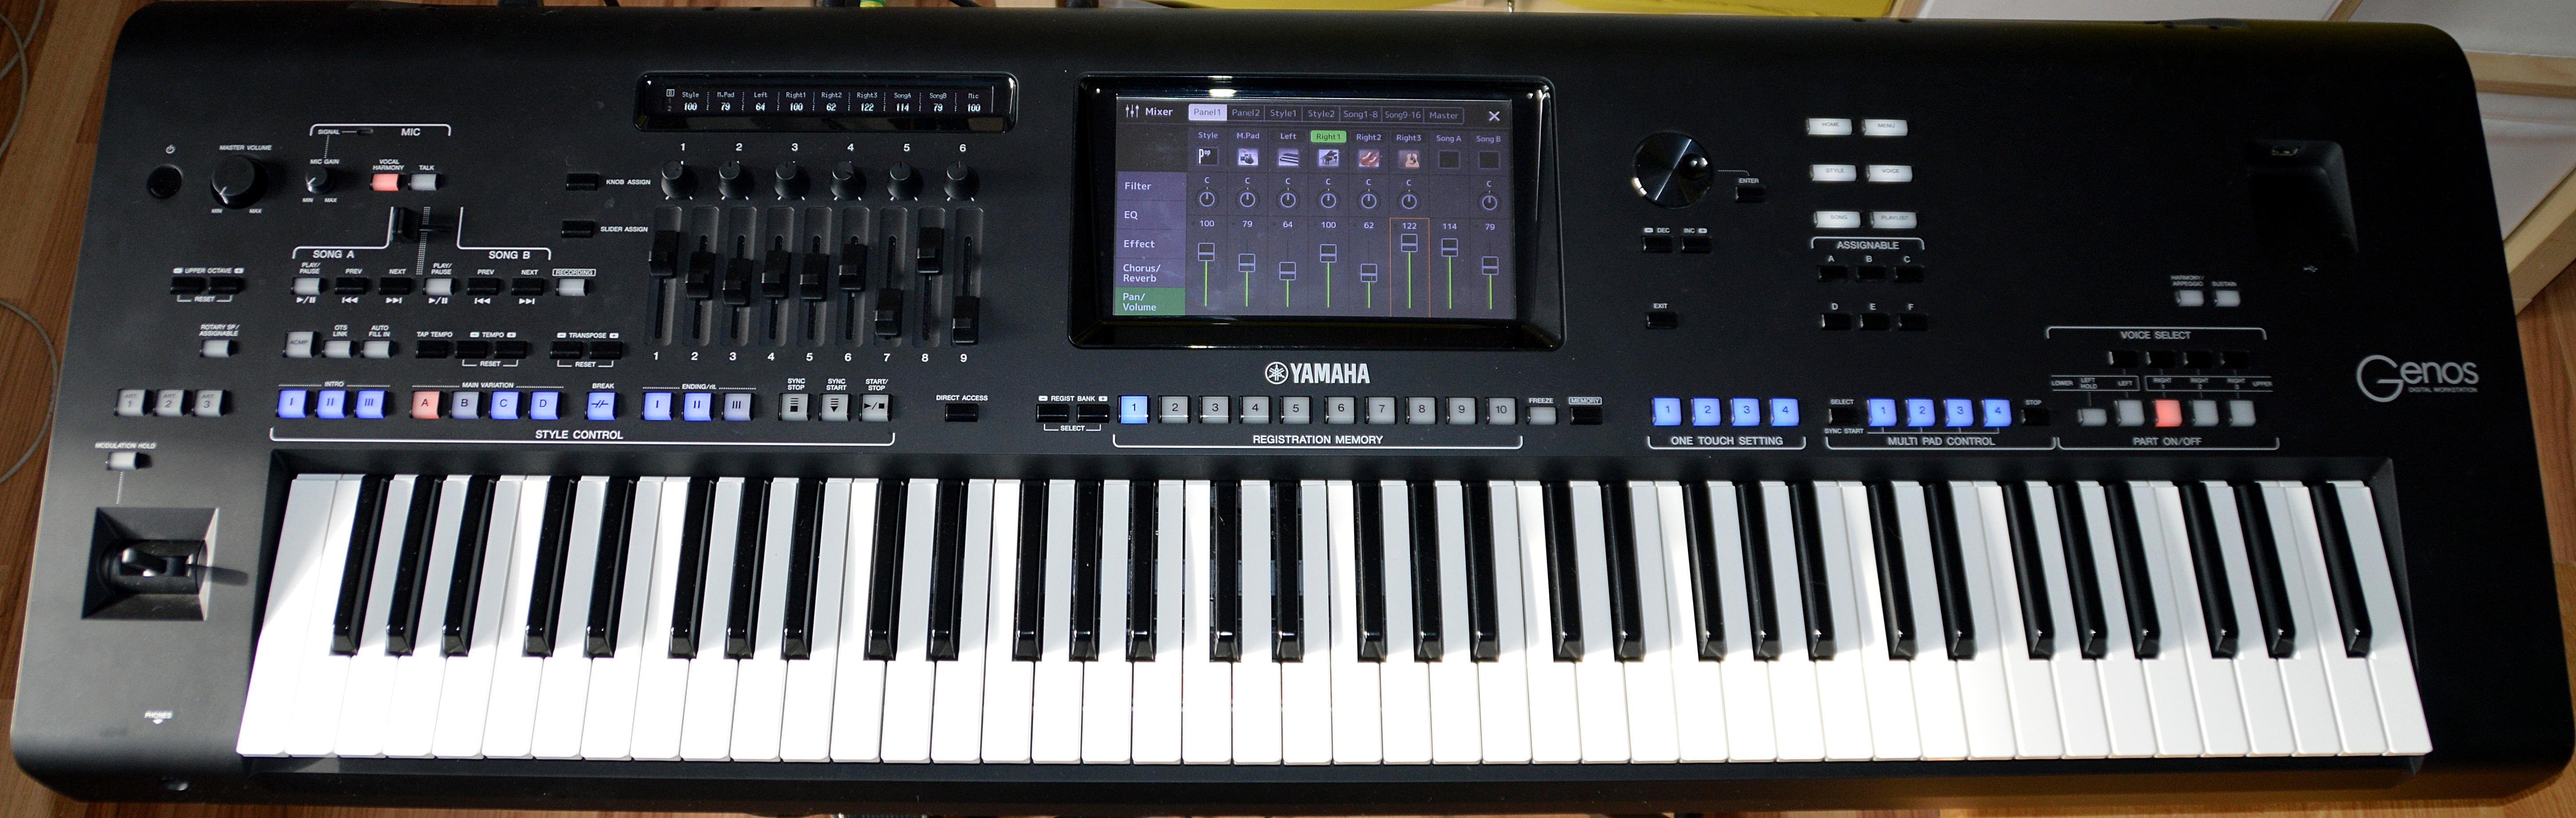 test yamaha genos arranger workstation synthesizer. Black Bedroom Furniture Sets. Home Design Ideas